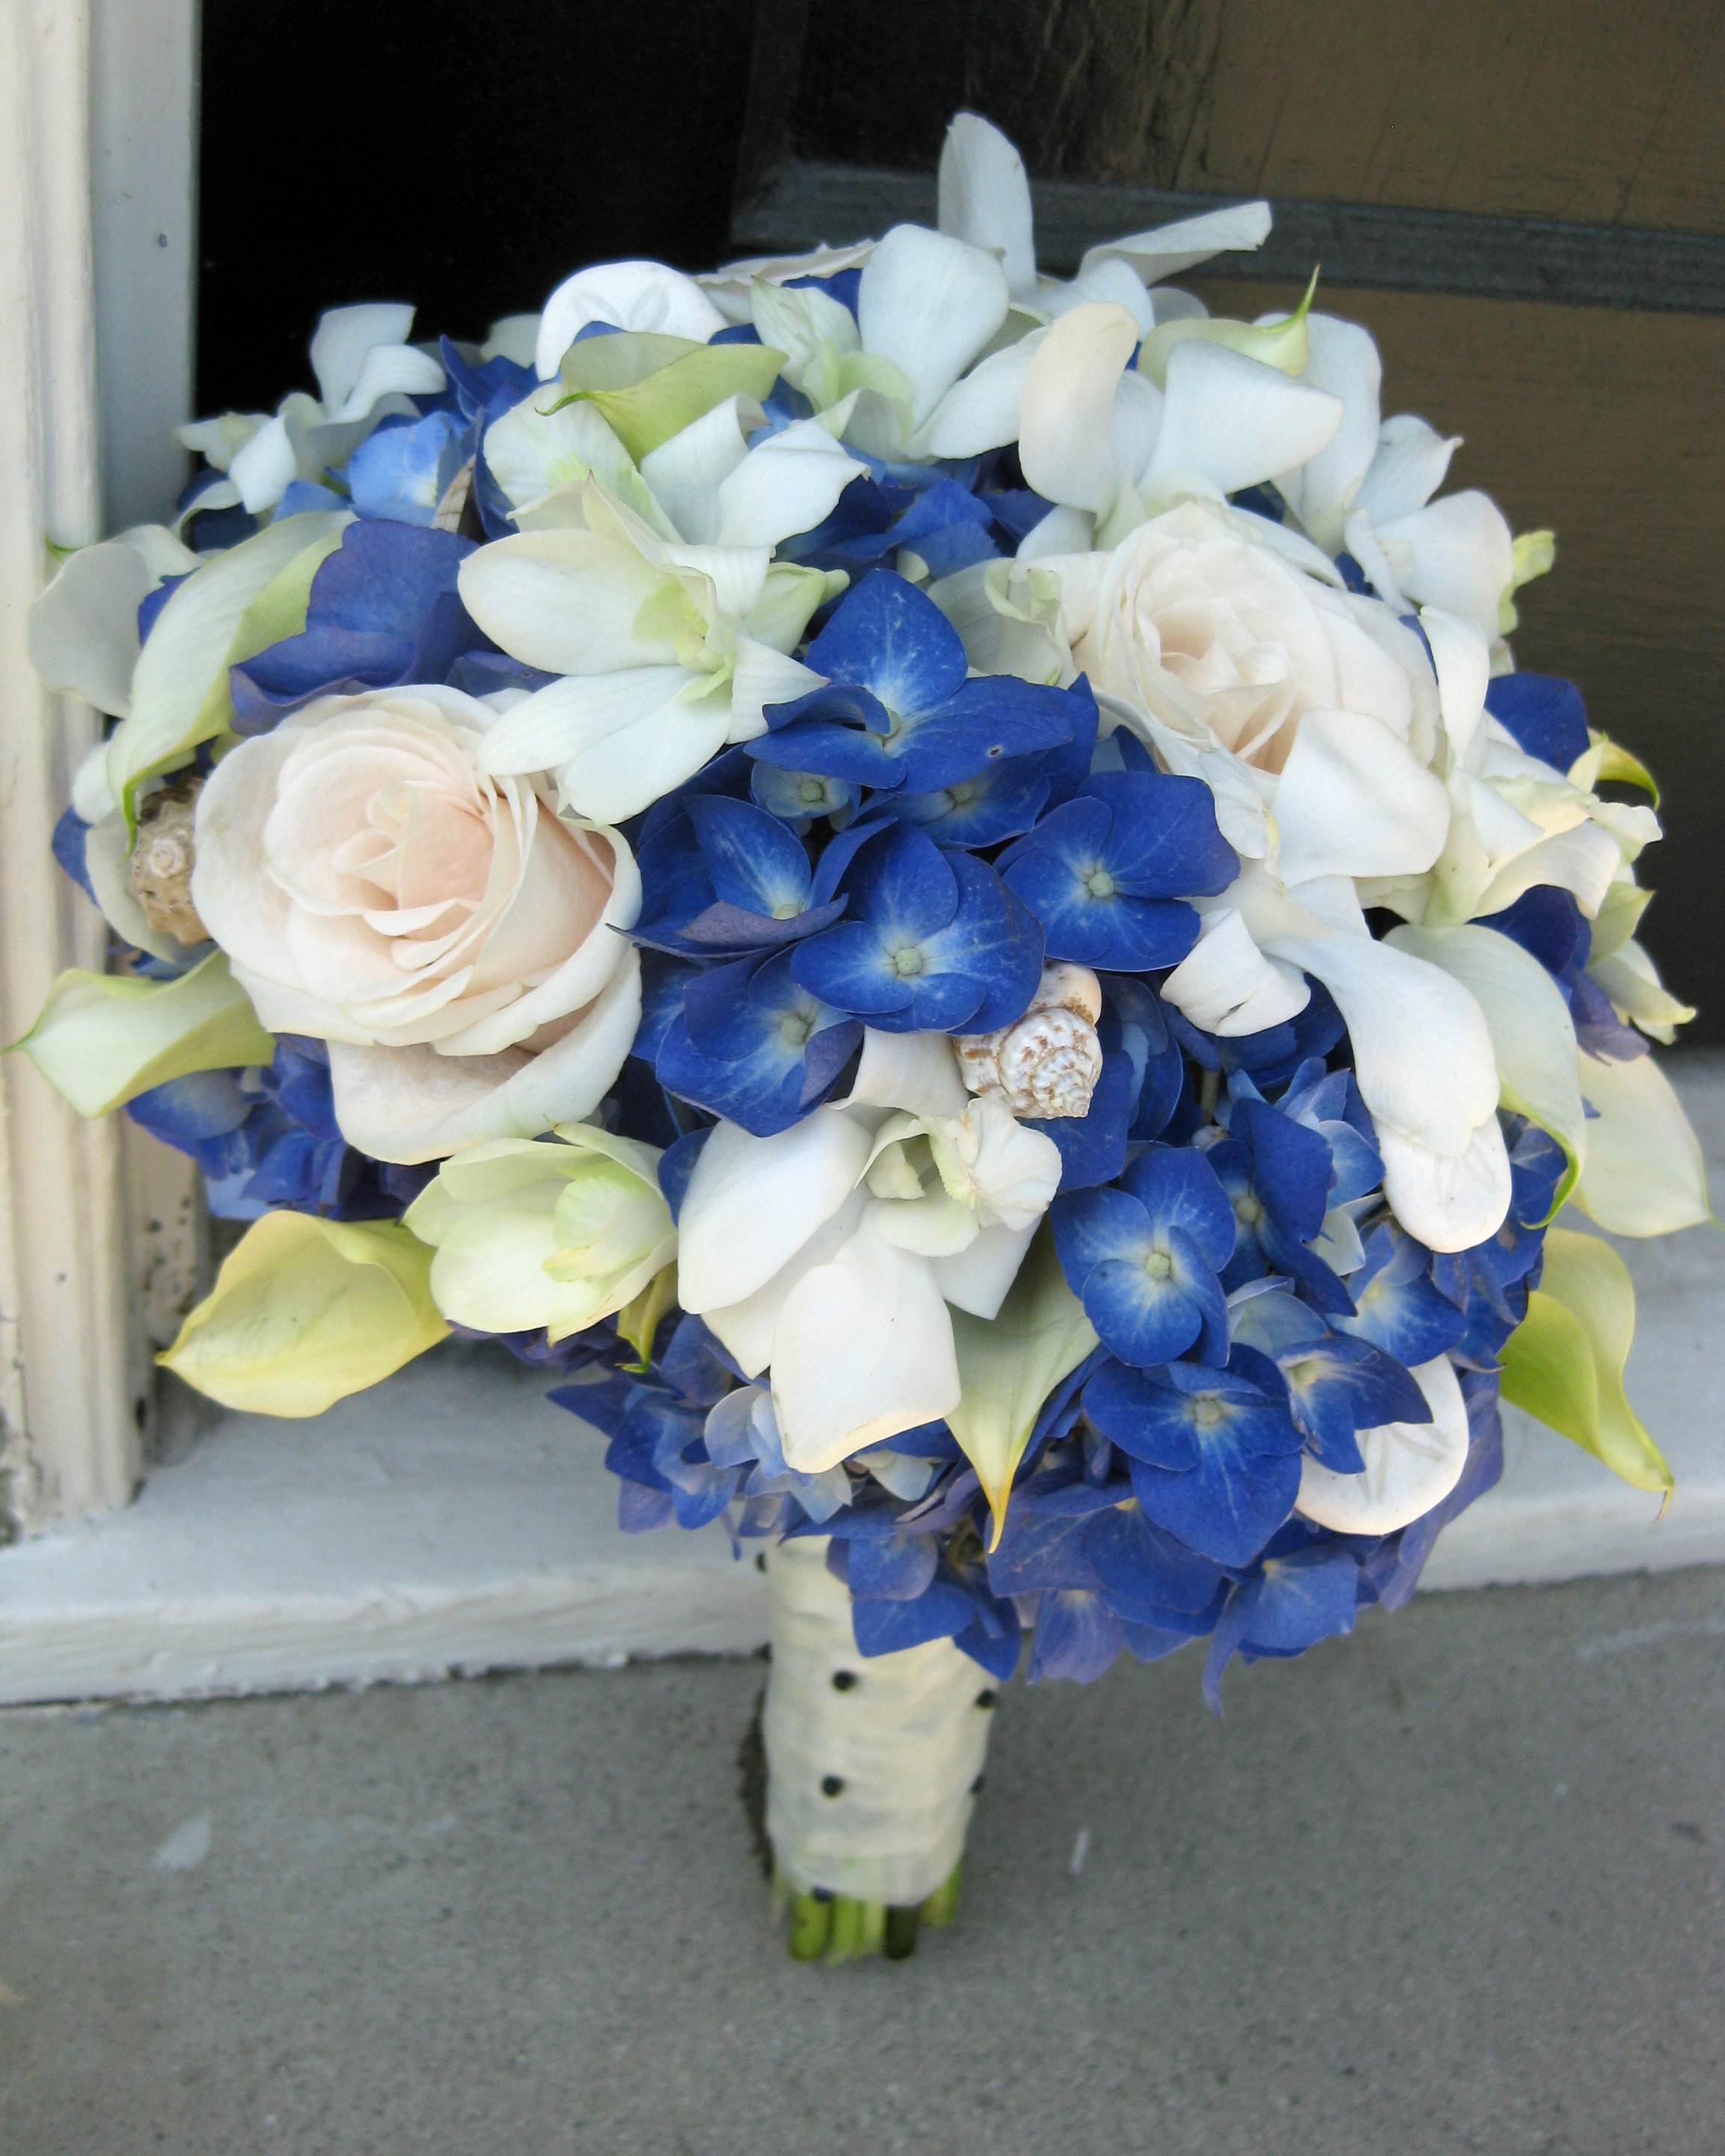 Blue white and black wedding flowers in laguna beach floral design the bride carried a bouquet made form royal blue hydrangea accented with mini calla lilies open roses touches of white orchids and seashells mightylinksfo